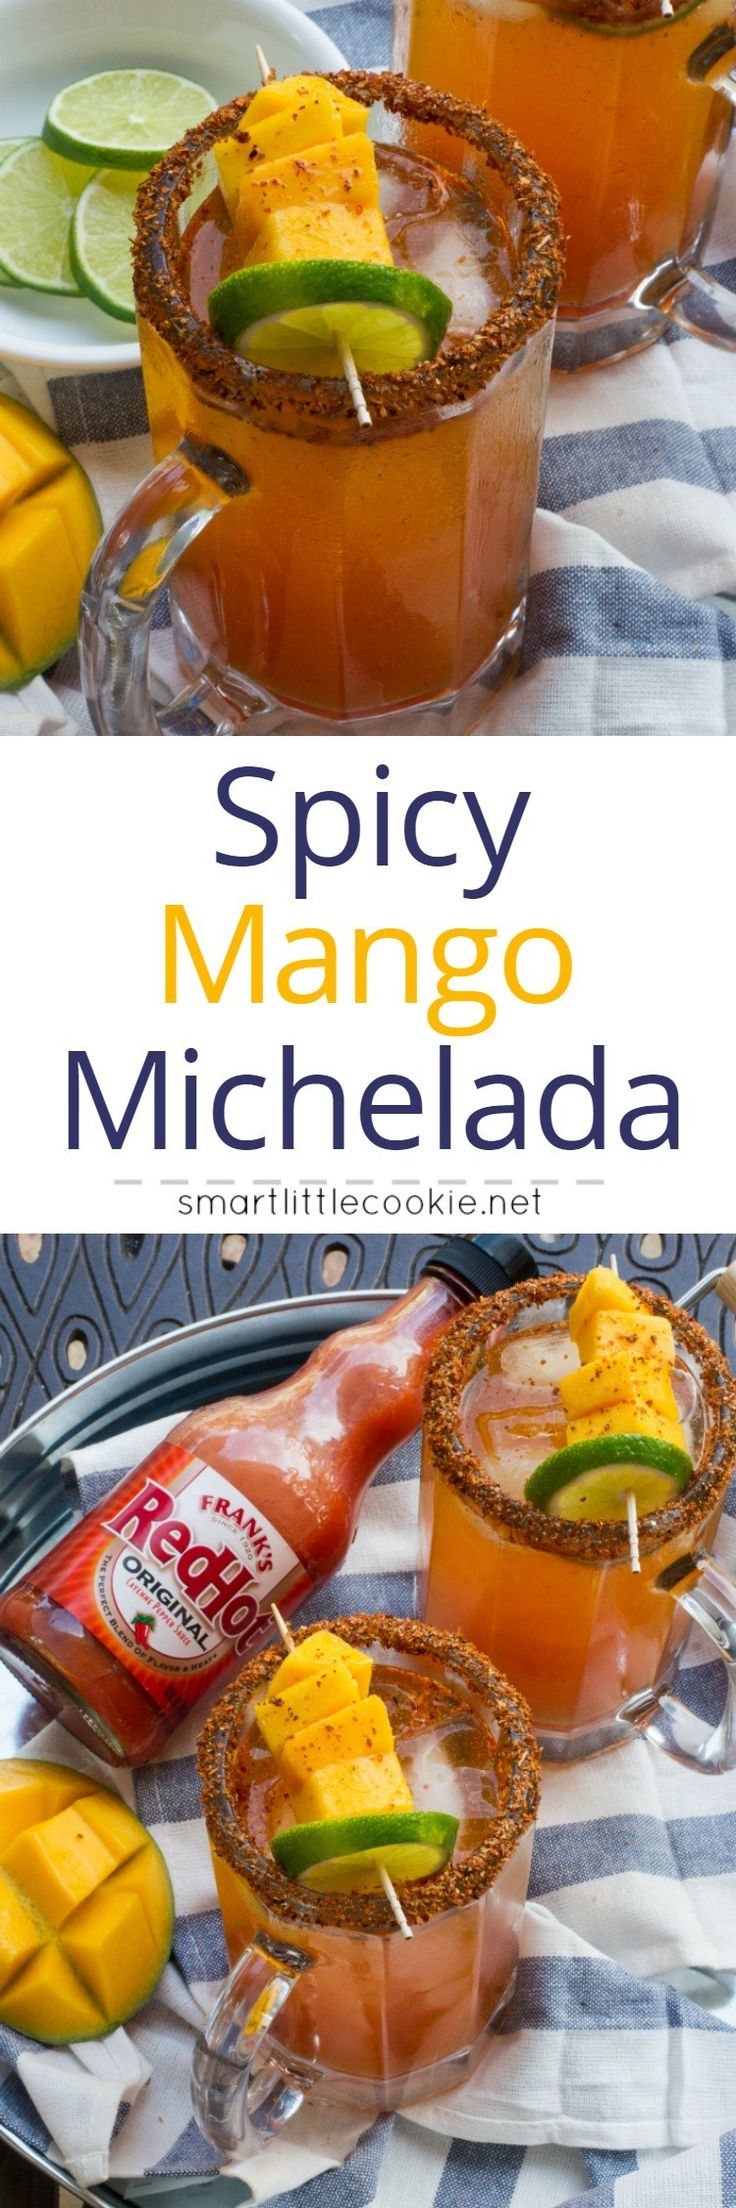 A sweet and spicy cocktail made with vegetable juice, mango tequila, Tajin, hot sauce and beer. This Spicy Mango Michelada is the perfect poolside drink this summer!#RedHotSummer #ad #IPTSOE